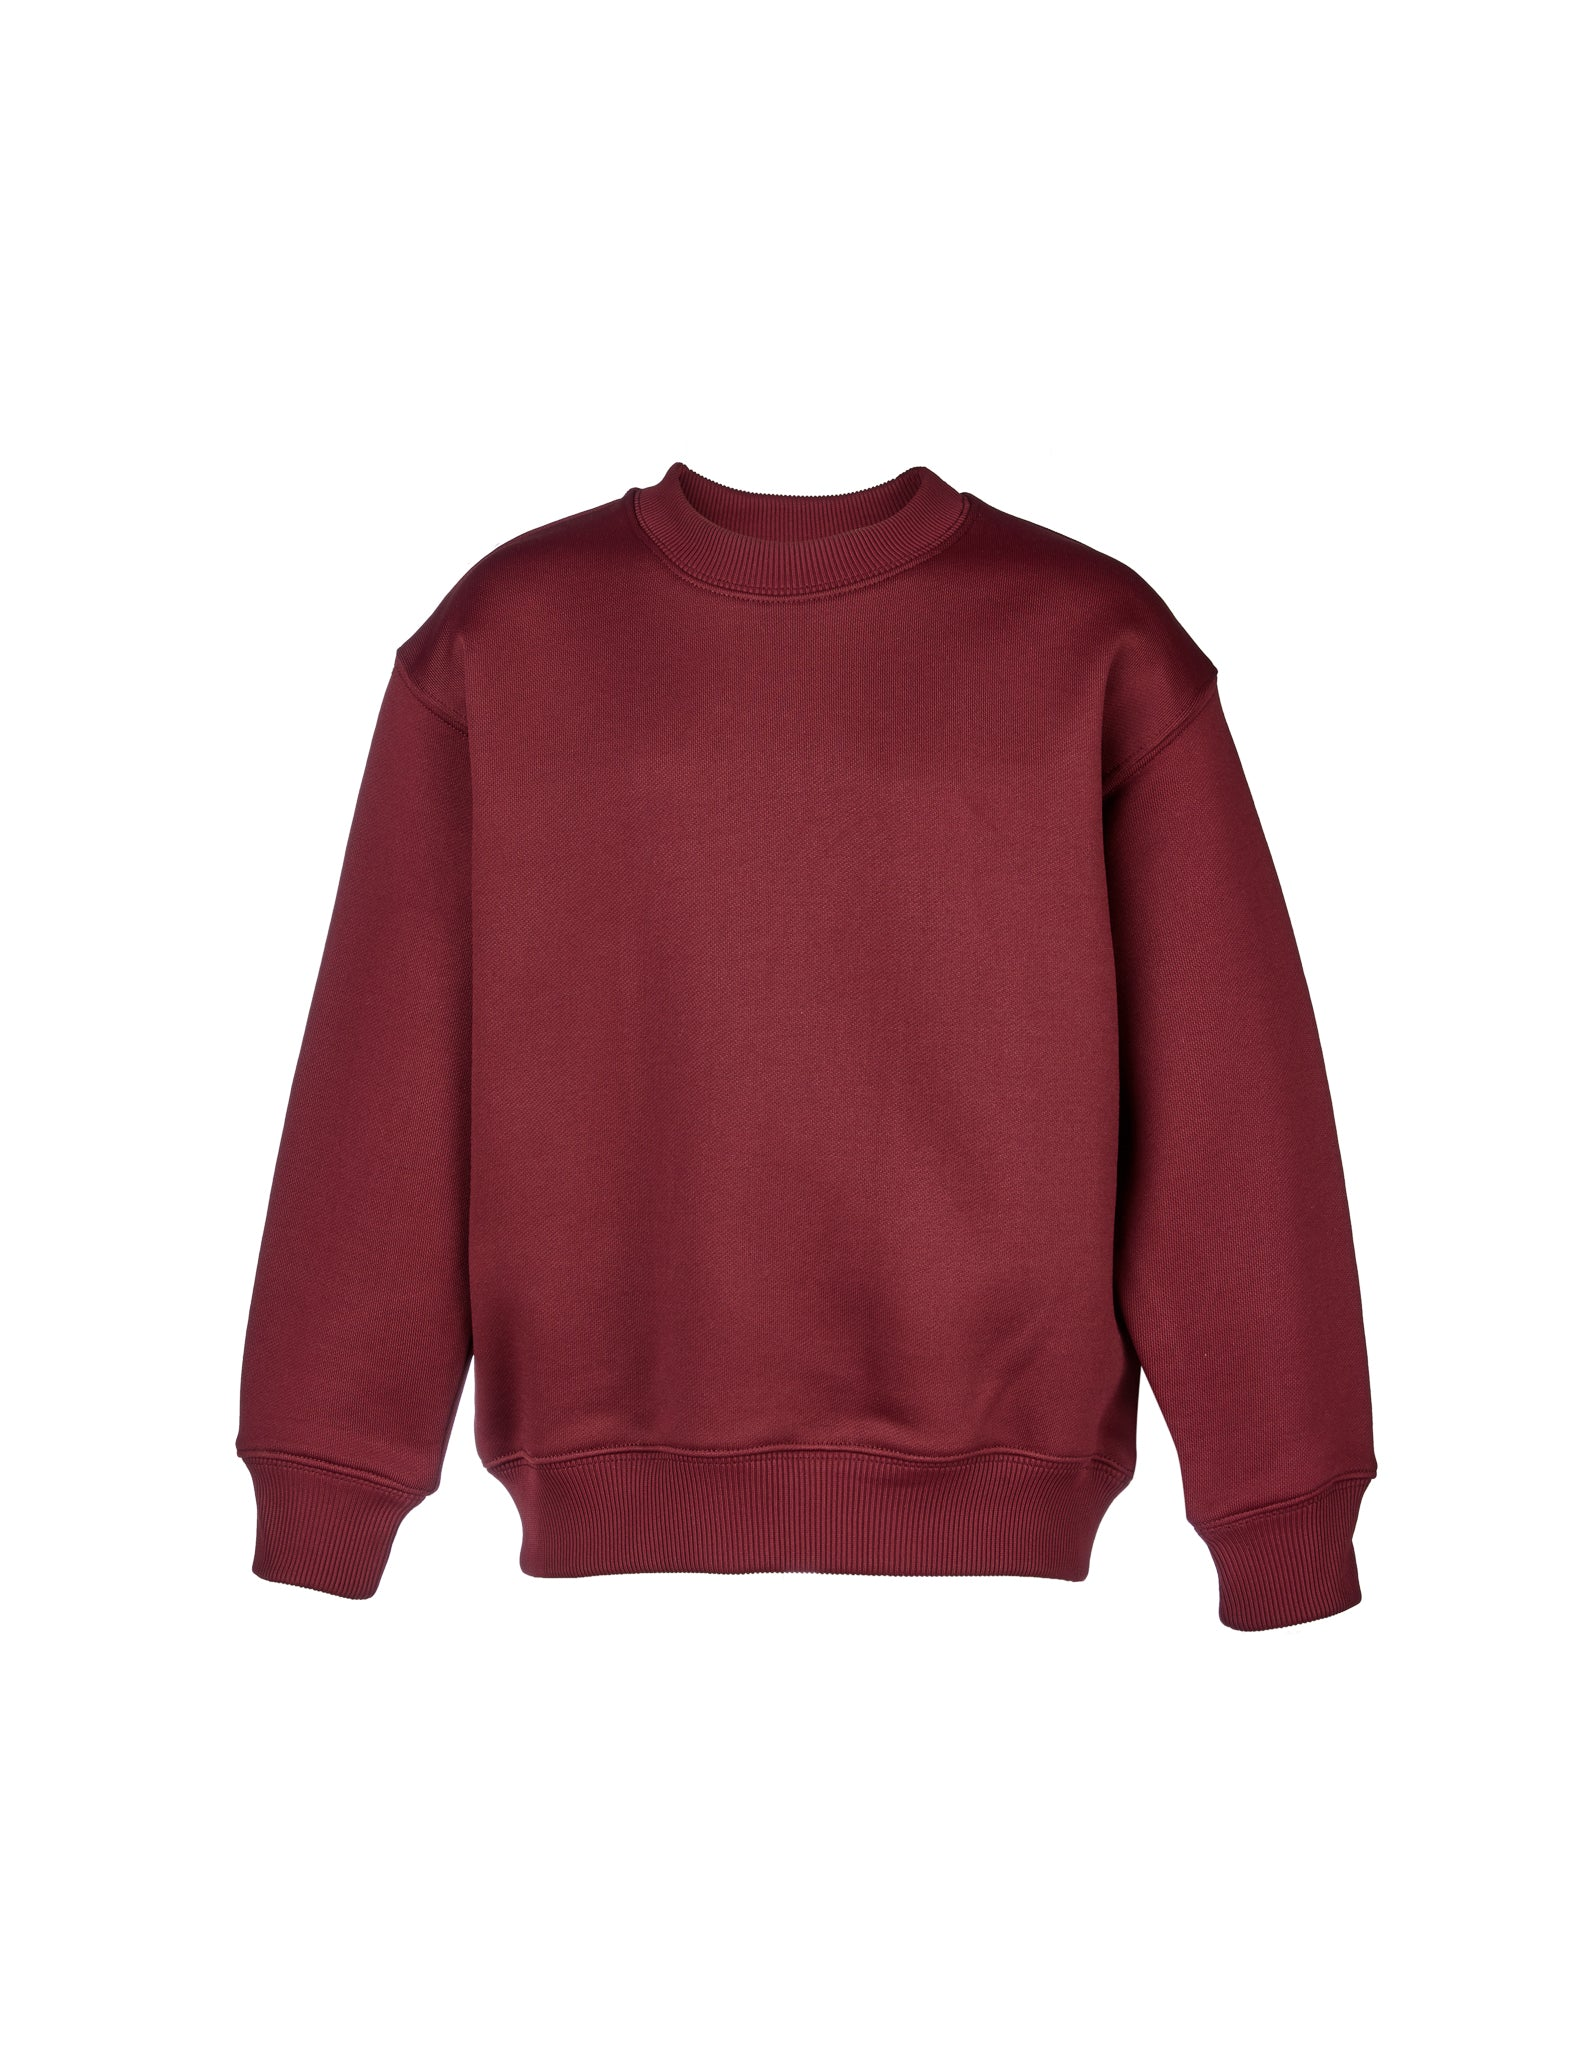 M'A KIDS CREW NECK IN BURGUNDY